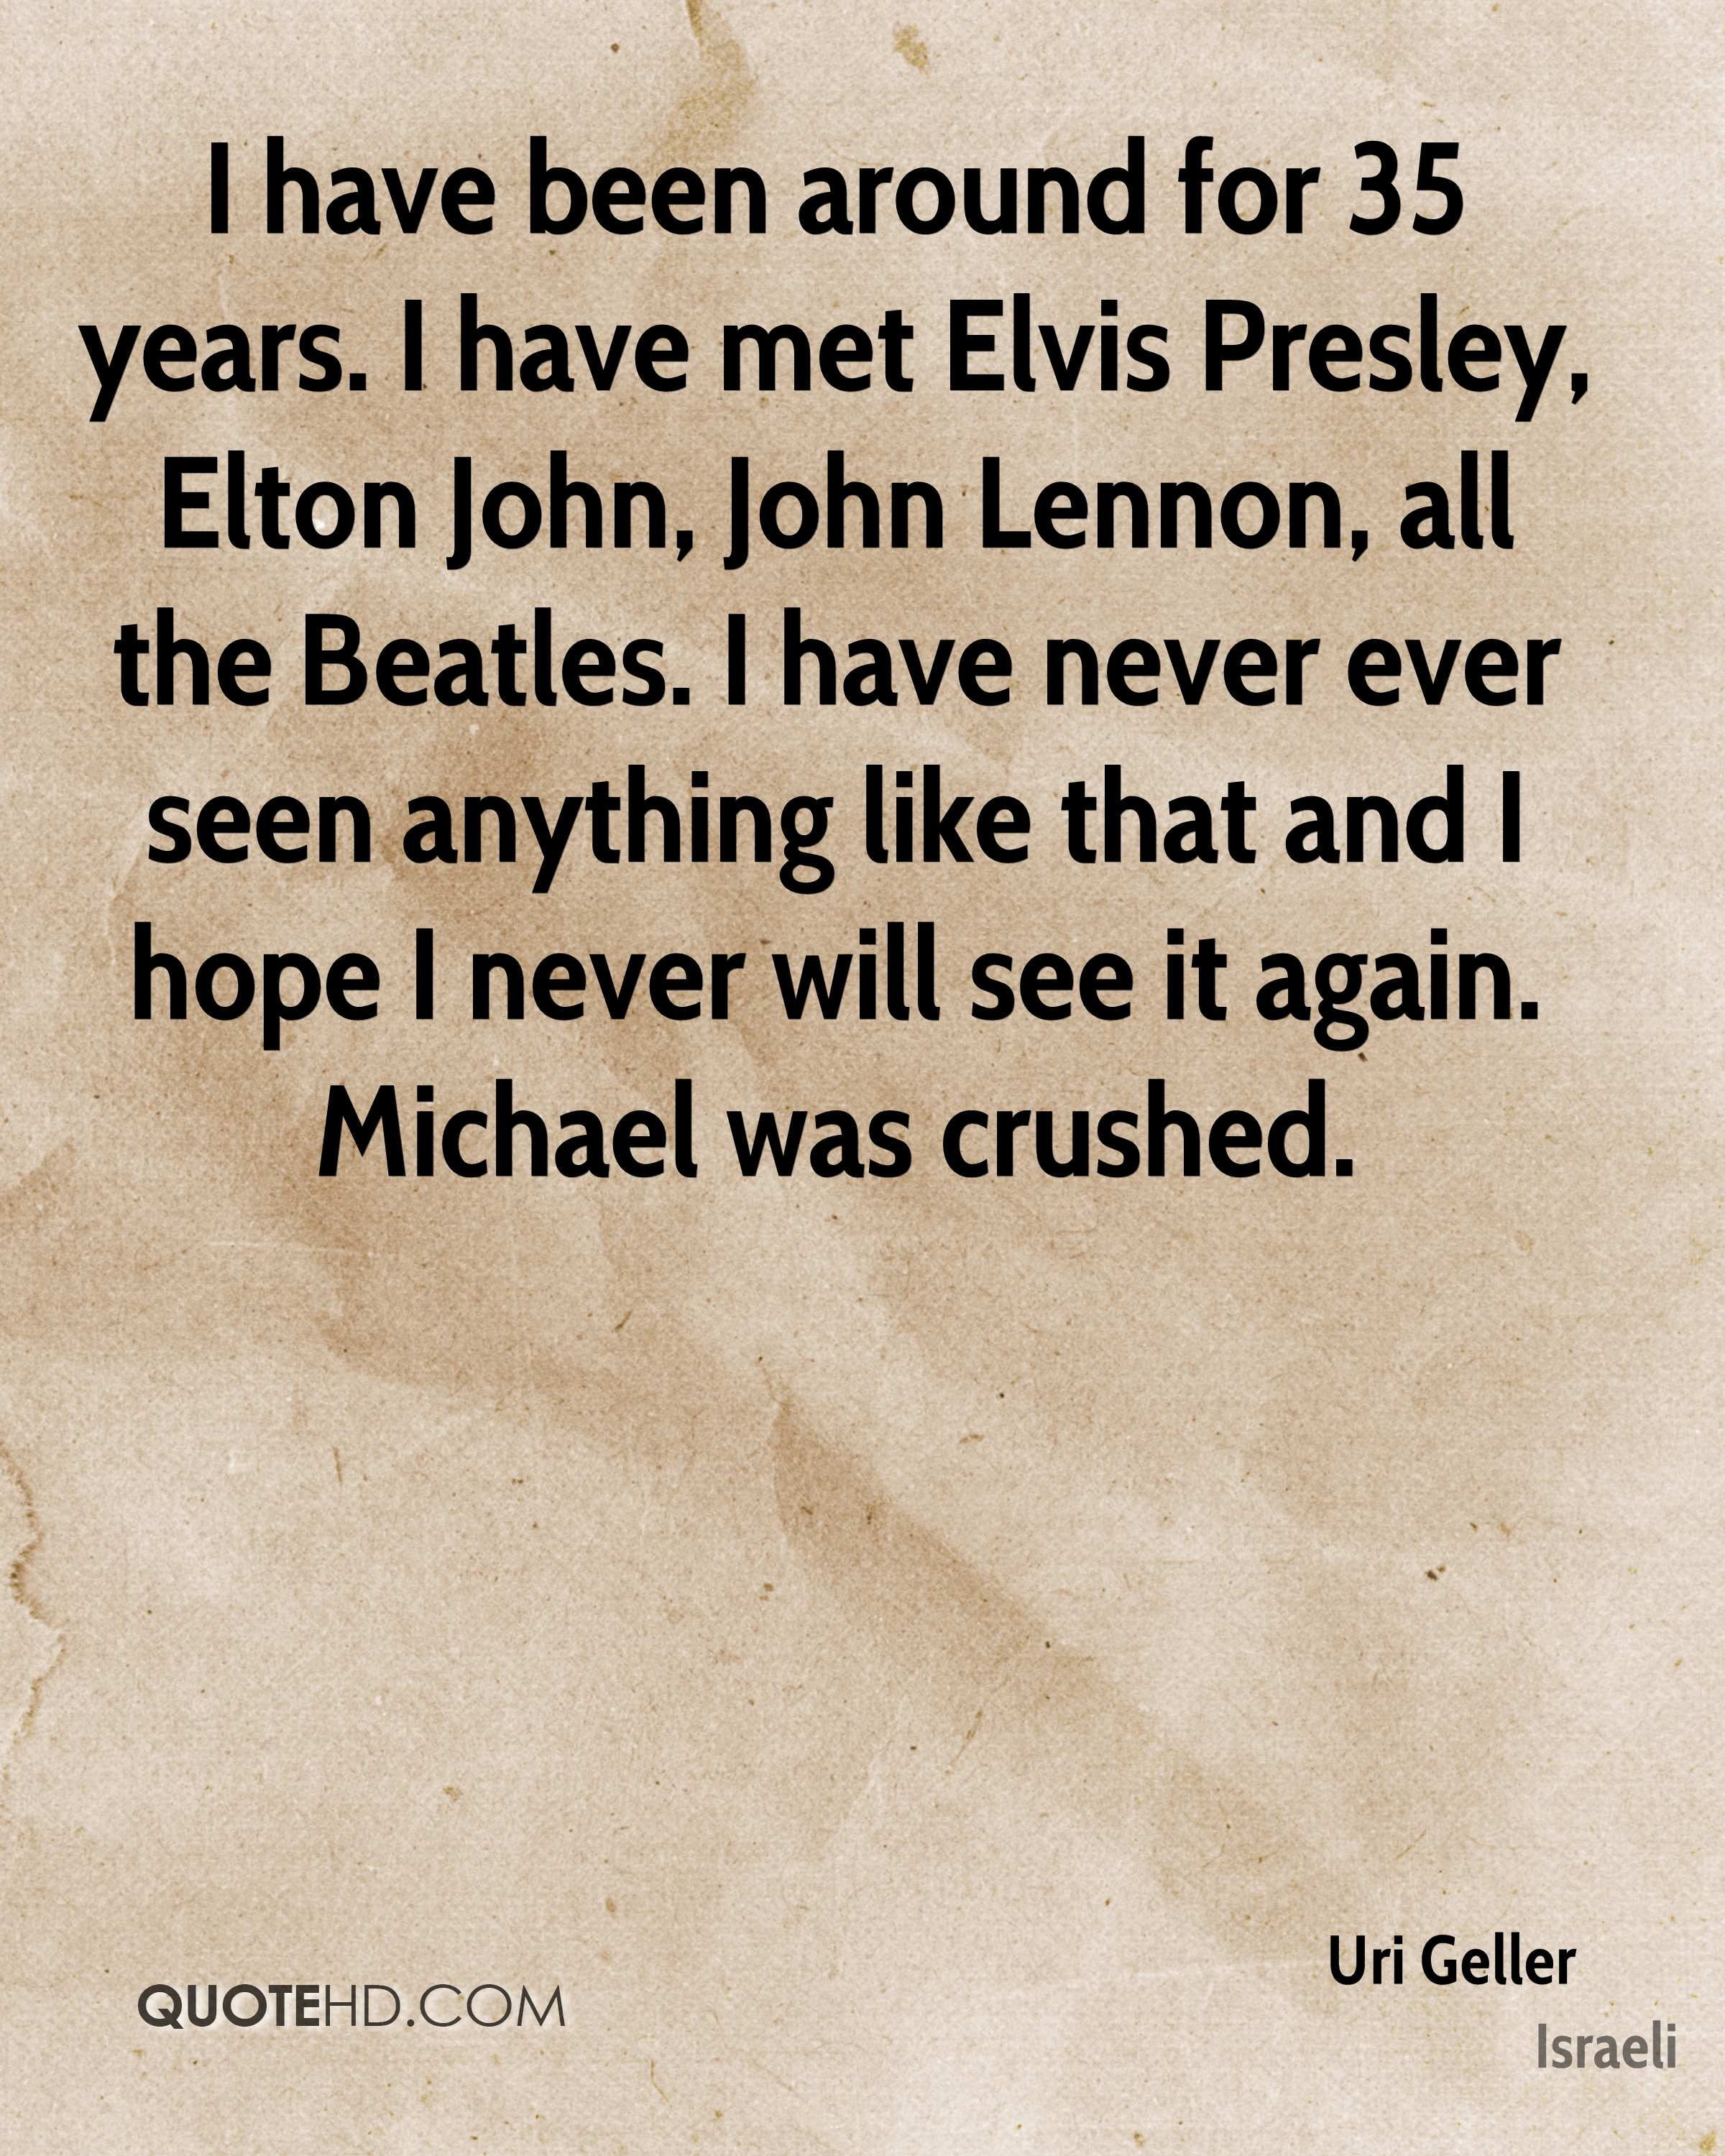 I have been around for 35 years. I have met Elvis Presley, Elton John, John Lennon, all the Beatles. I have never ever seen anything like that and I hope I never will see it again. Michael was crushed.